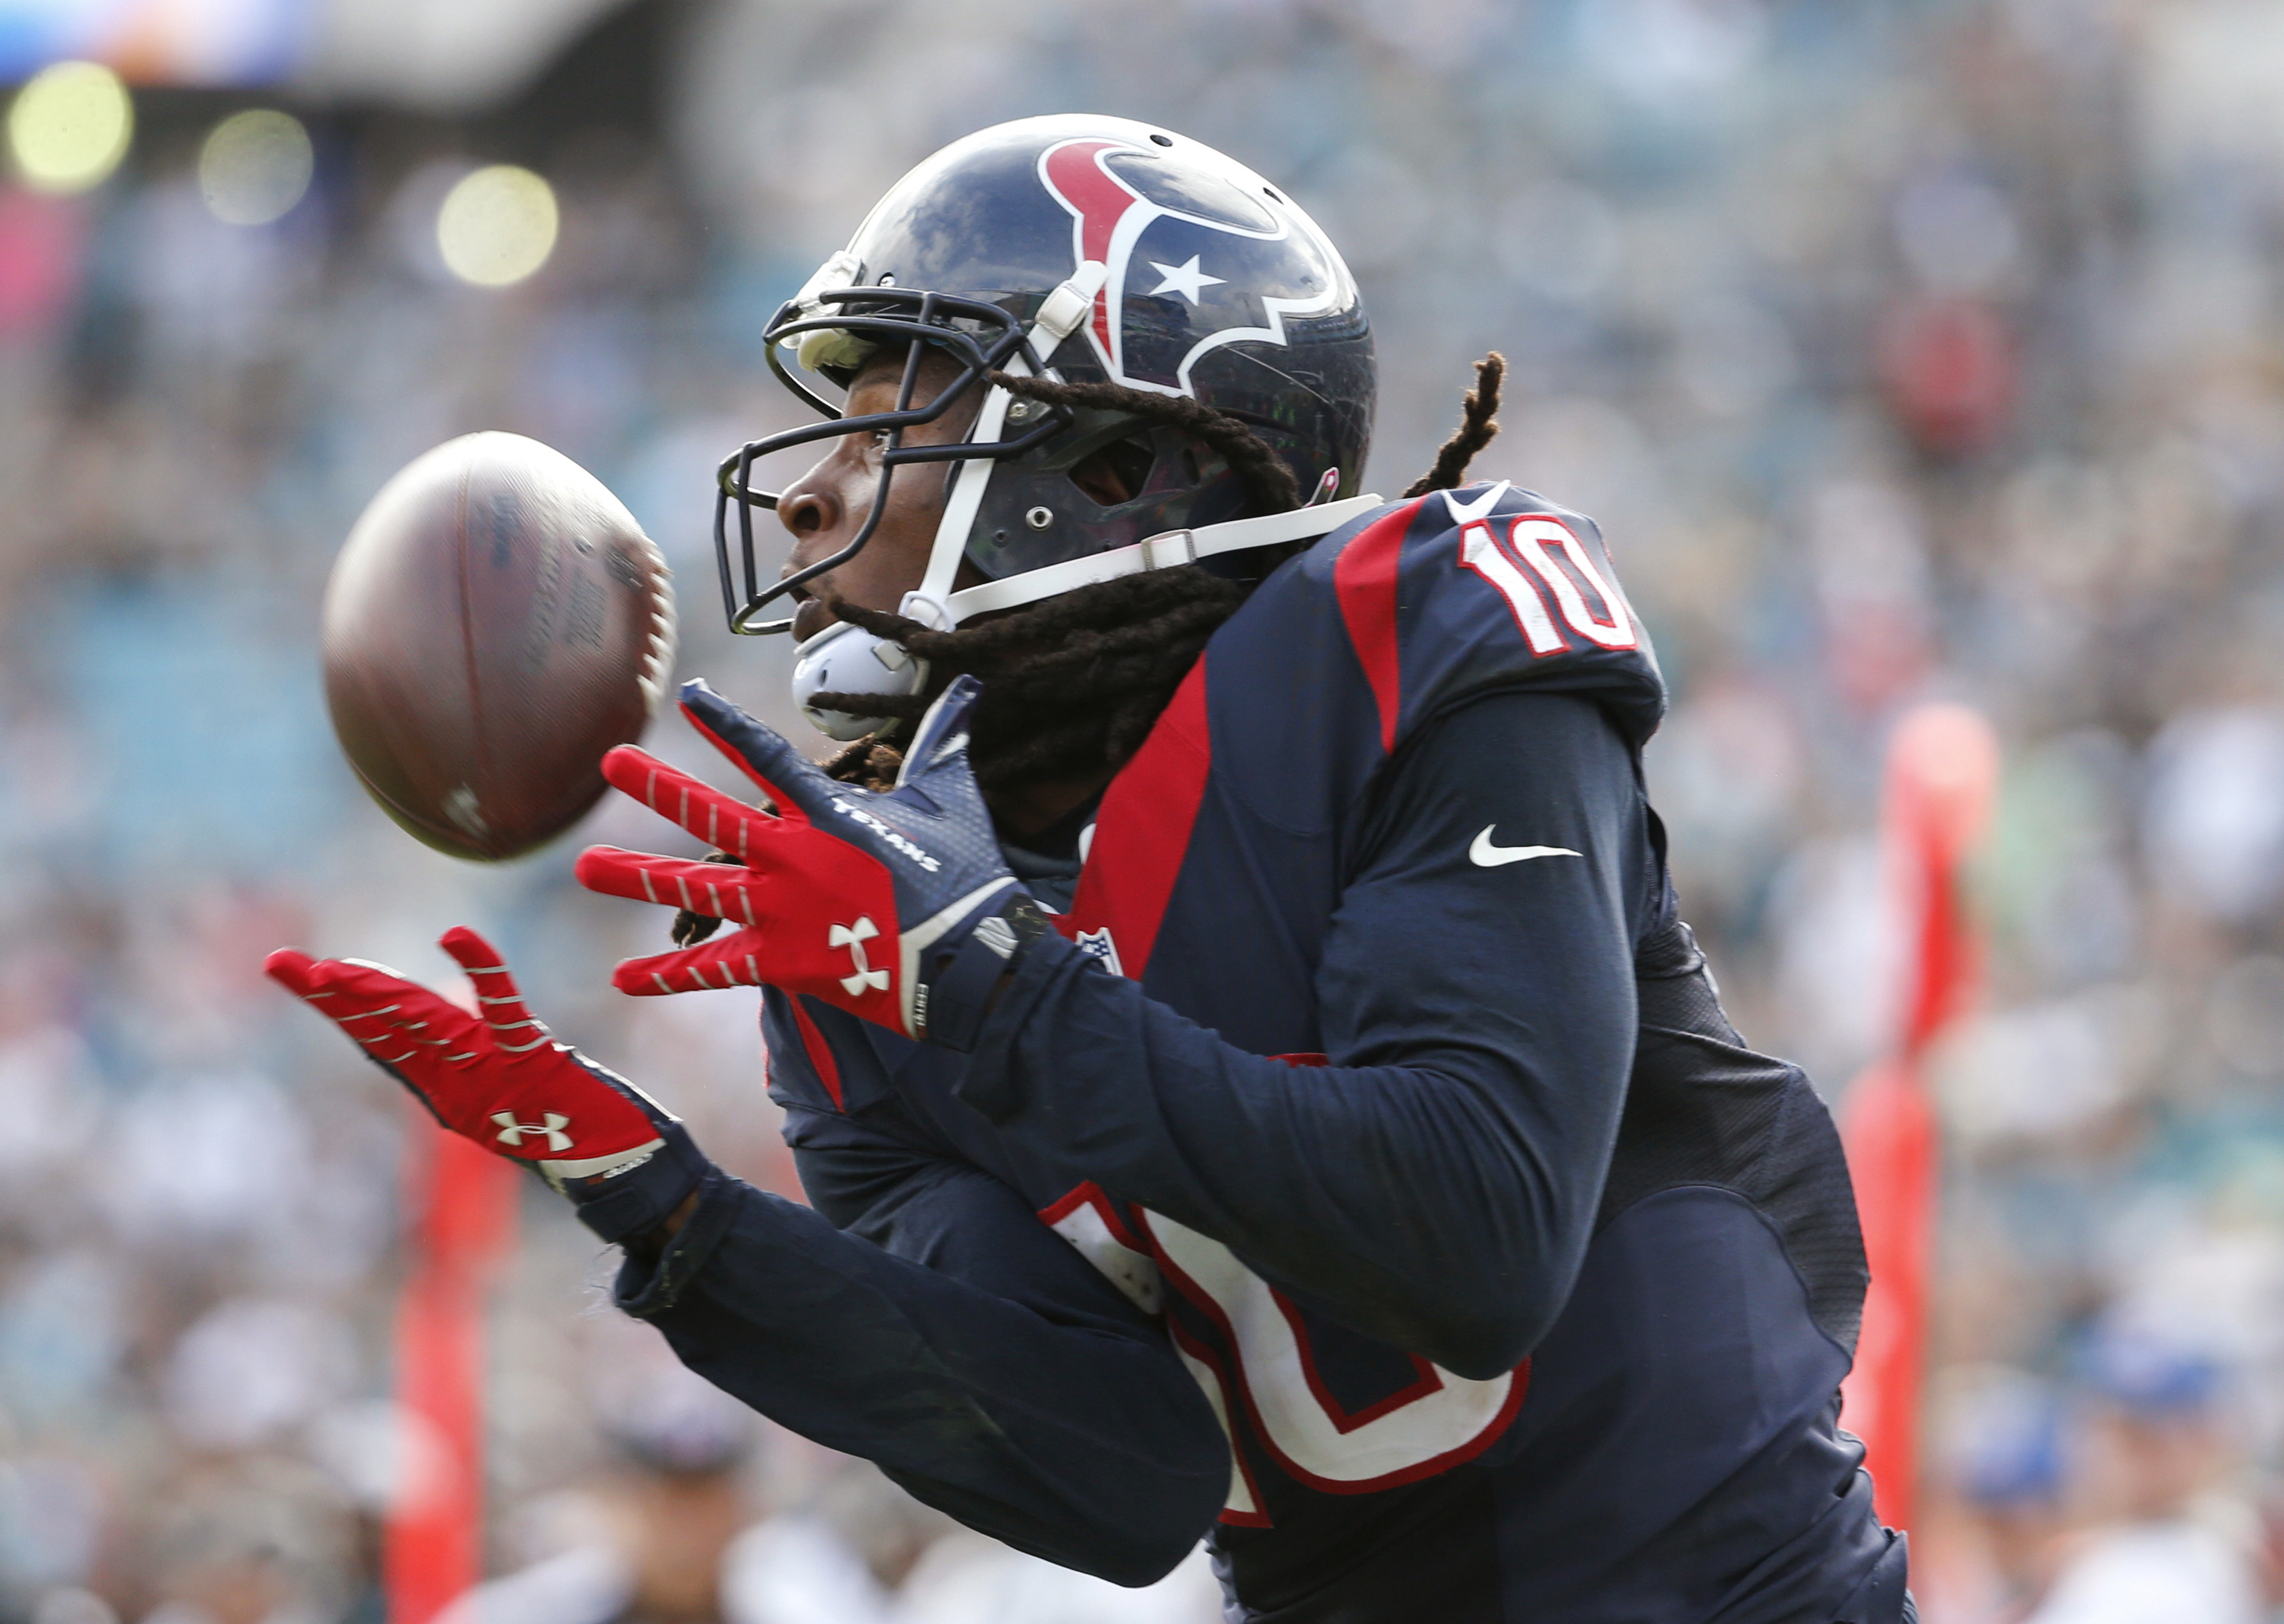 FILE - In this Oct. 18, 2015, file photo, Houston Texans wide receiver DeAndre Hopkins makes a catch for a touchdown against the Jacksonville Jaguars during an NFL football game in Jacksonville, Fla. Hopkins did not report to training camp Saturday, July